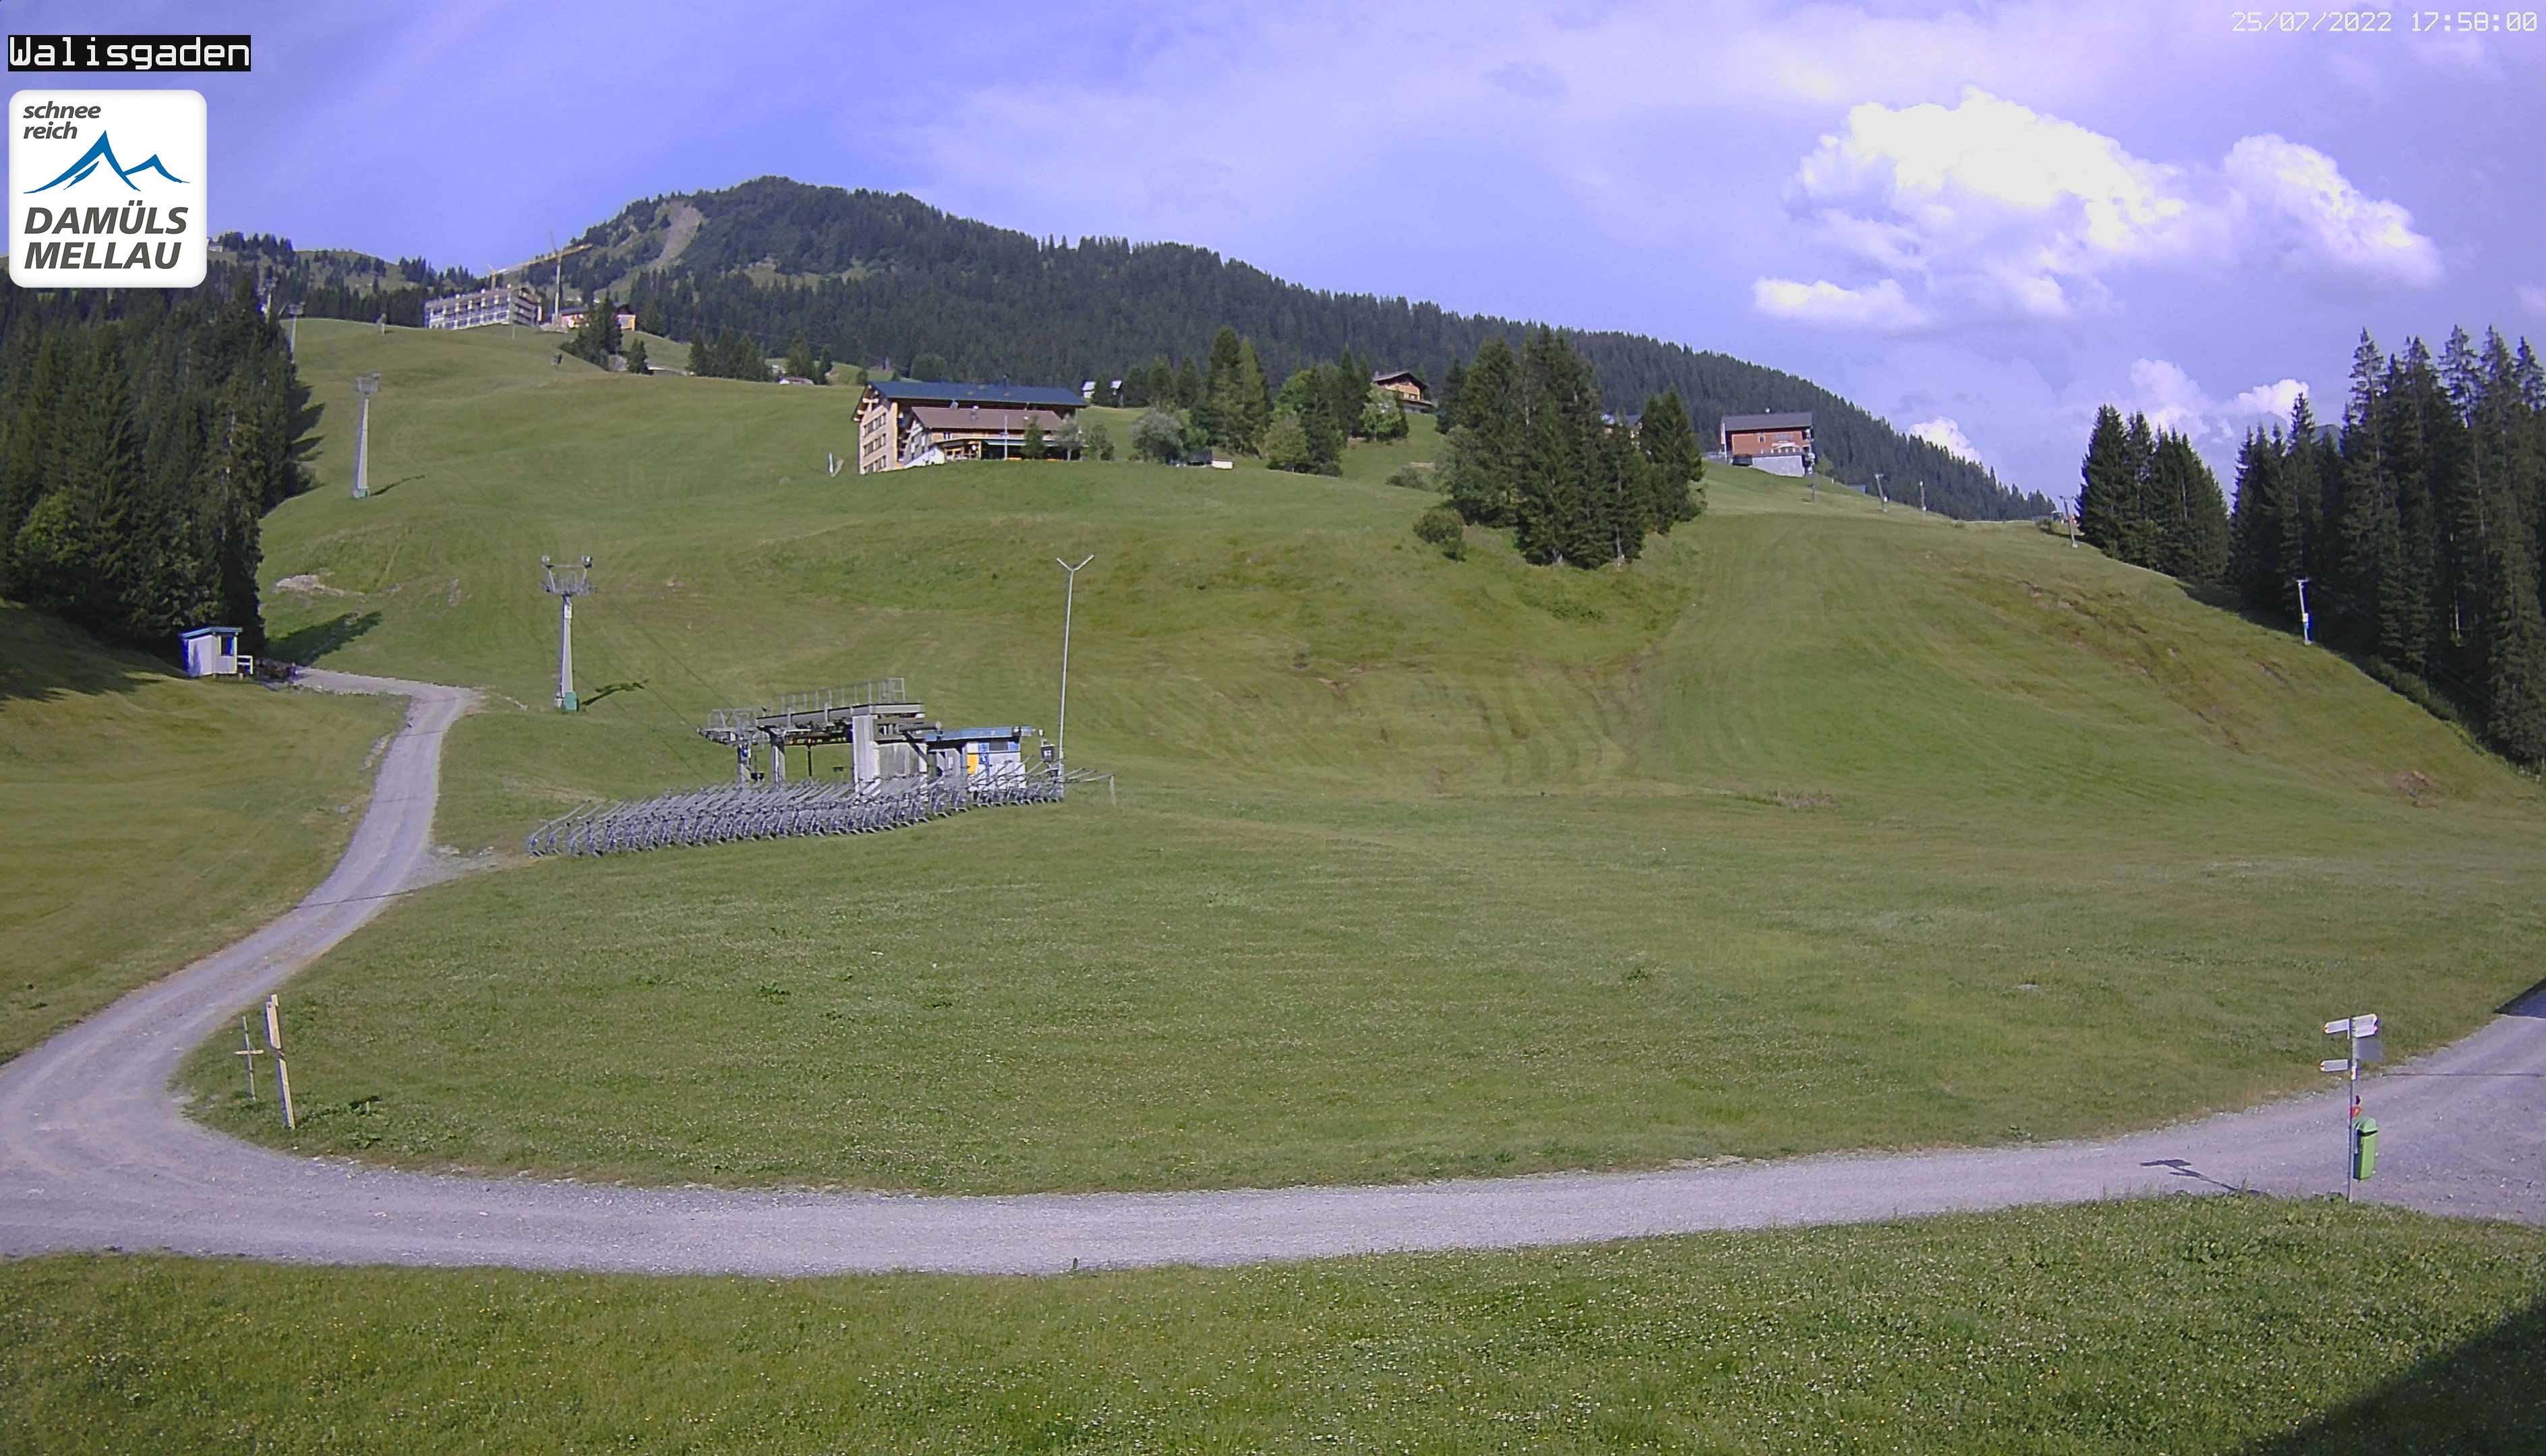 Webcam Walisgaden Damüls 1450m